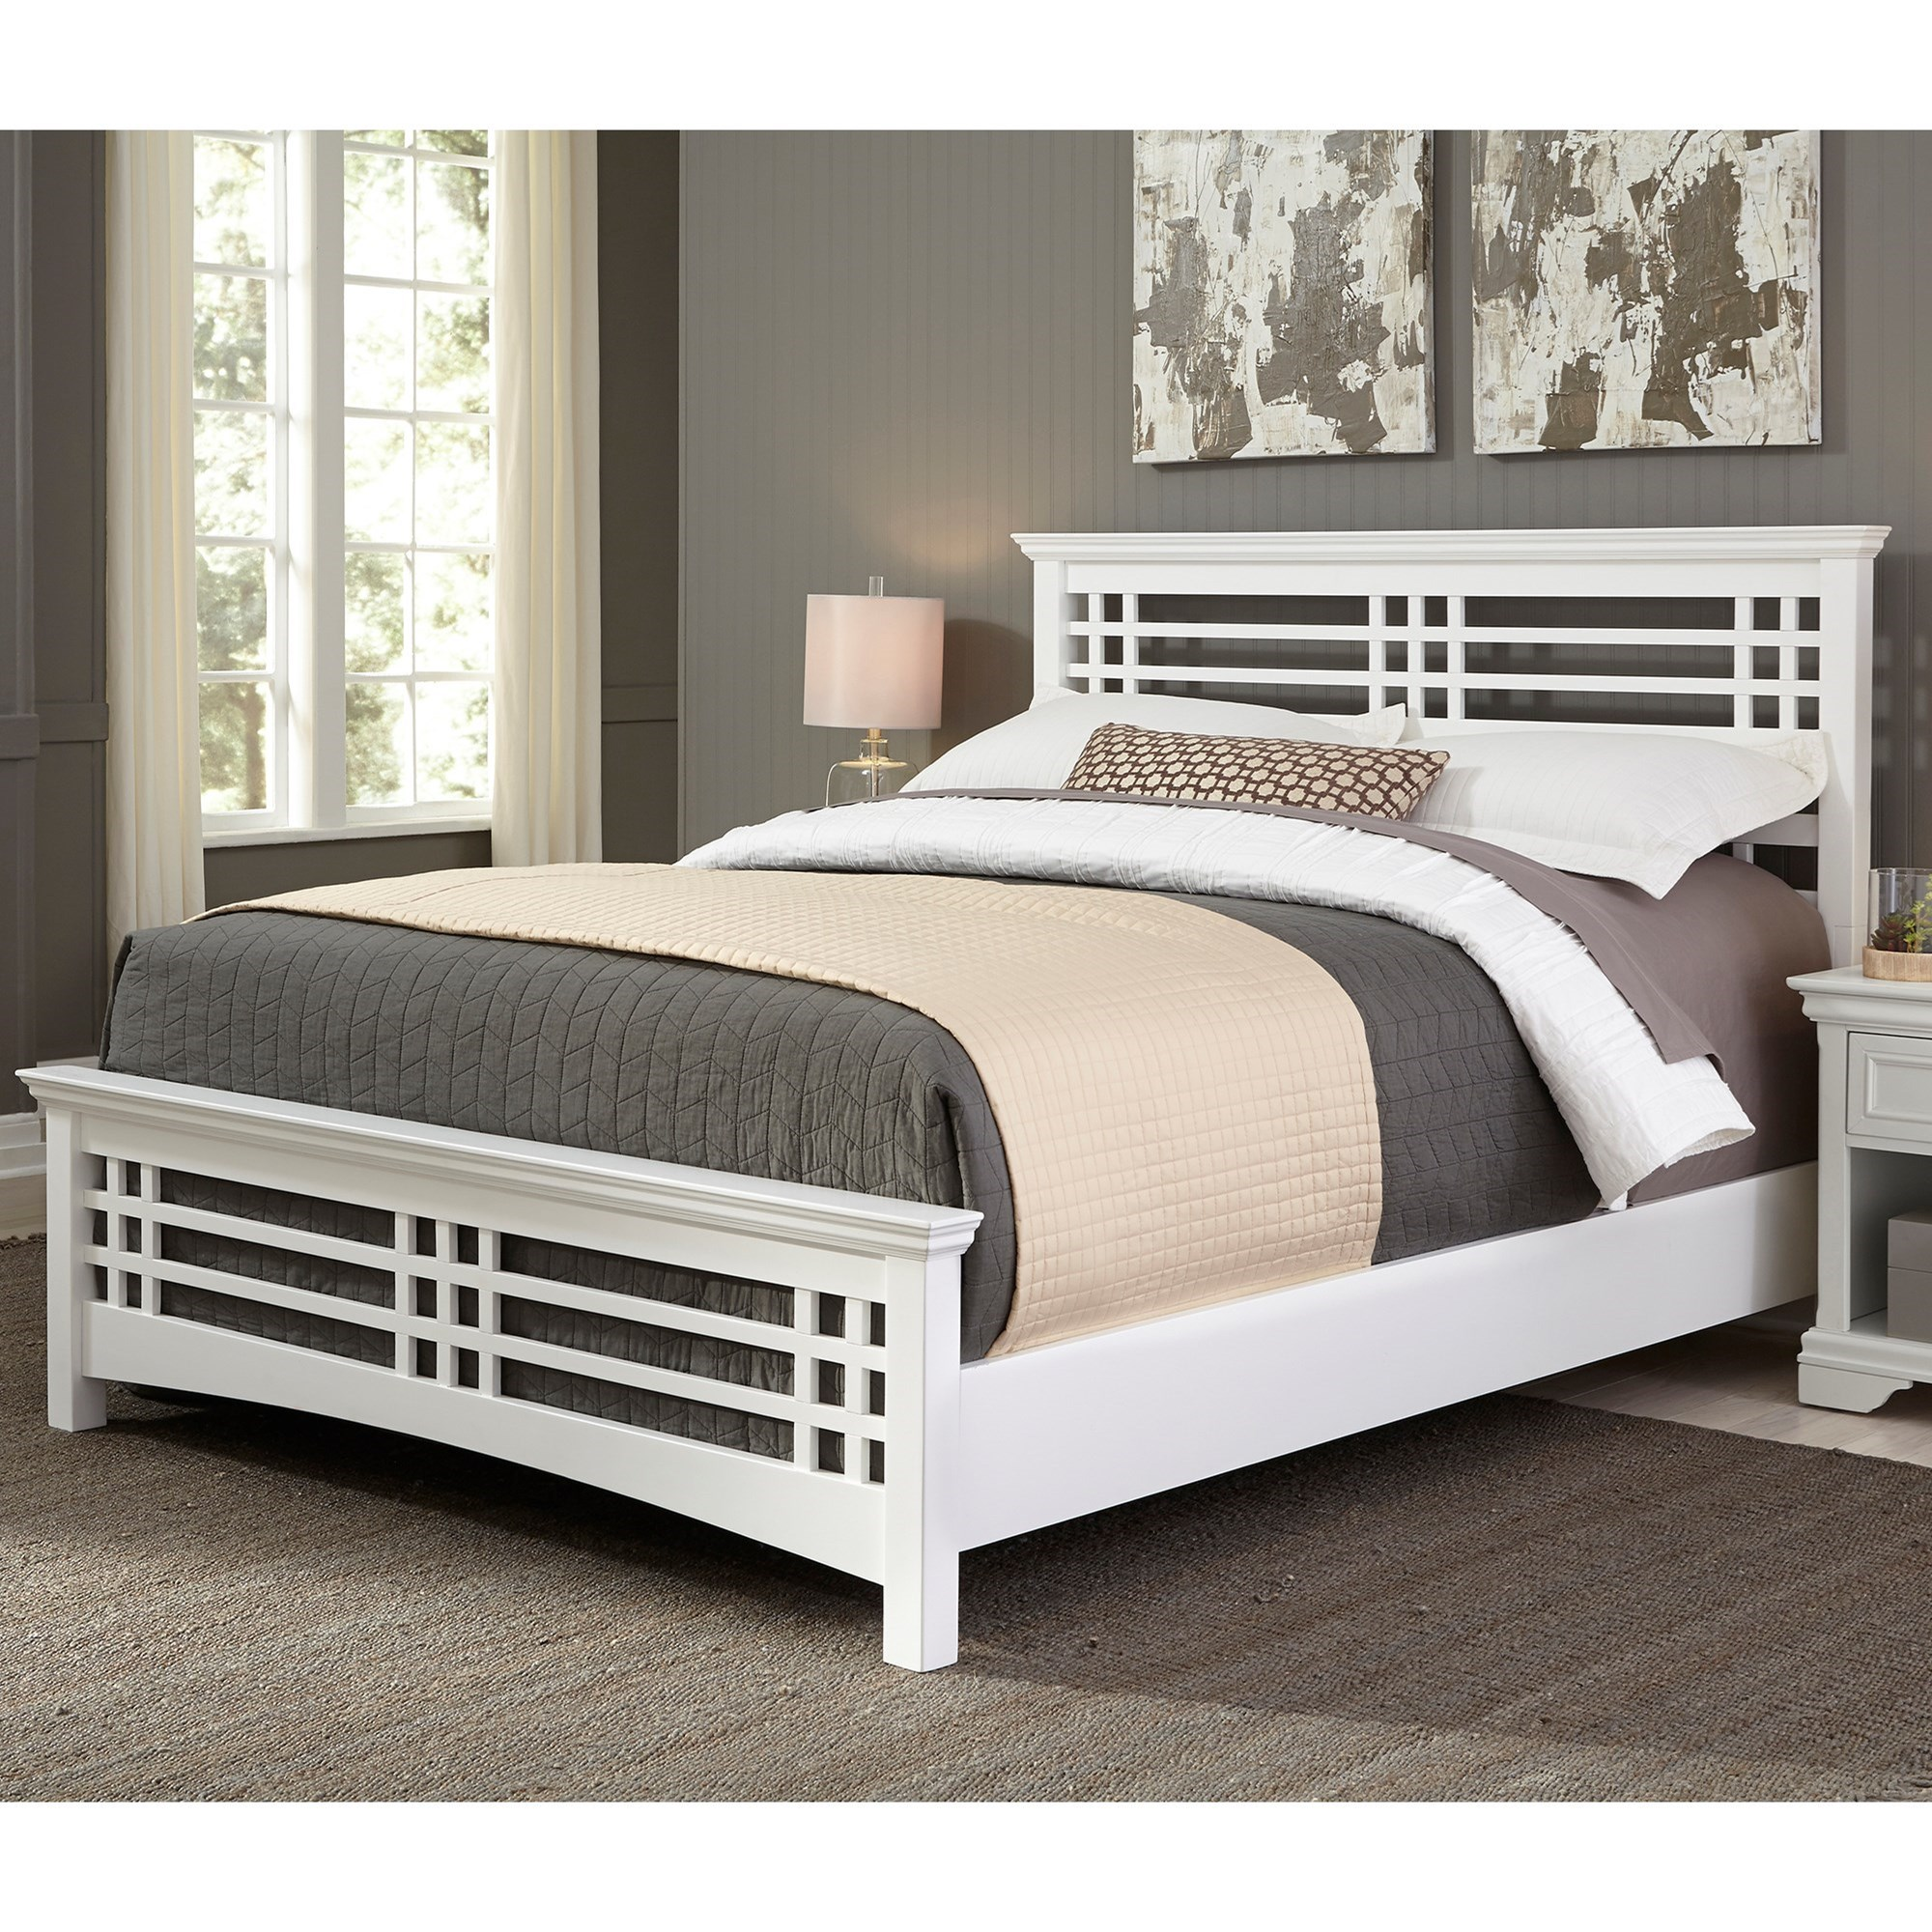 Fashion bed group avery b21156 avery king bed with wood for Mission style bed frame plans